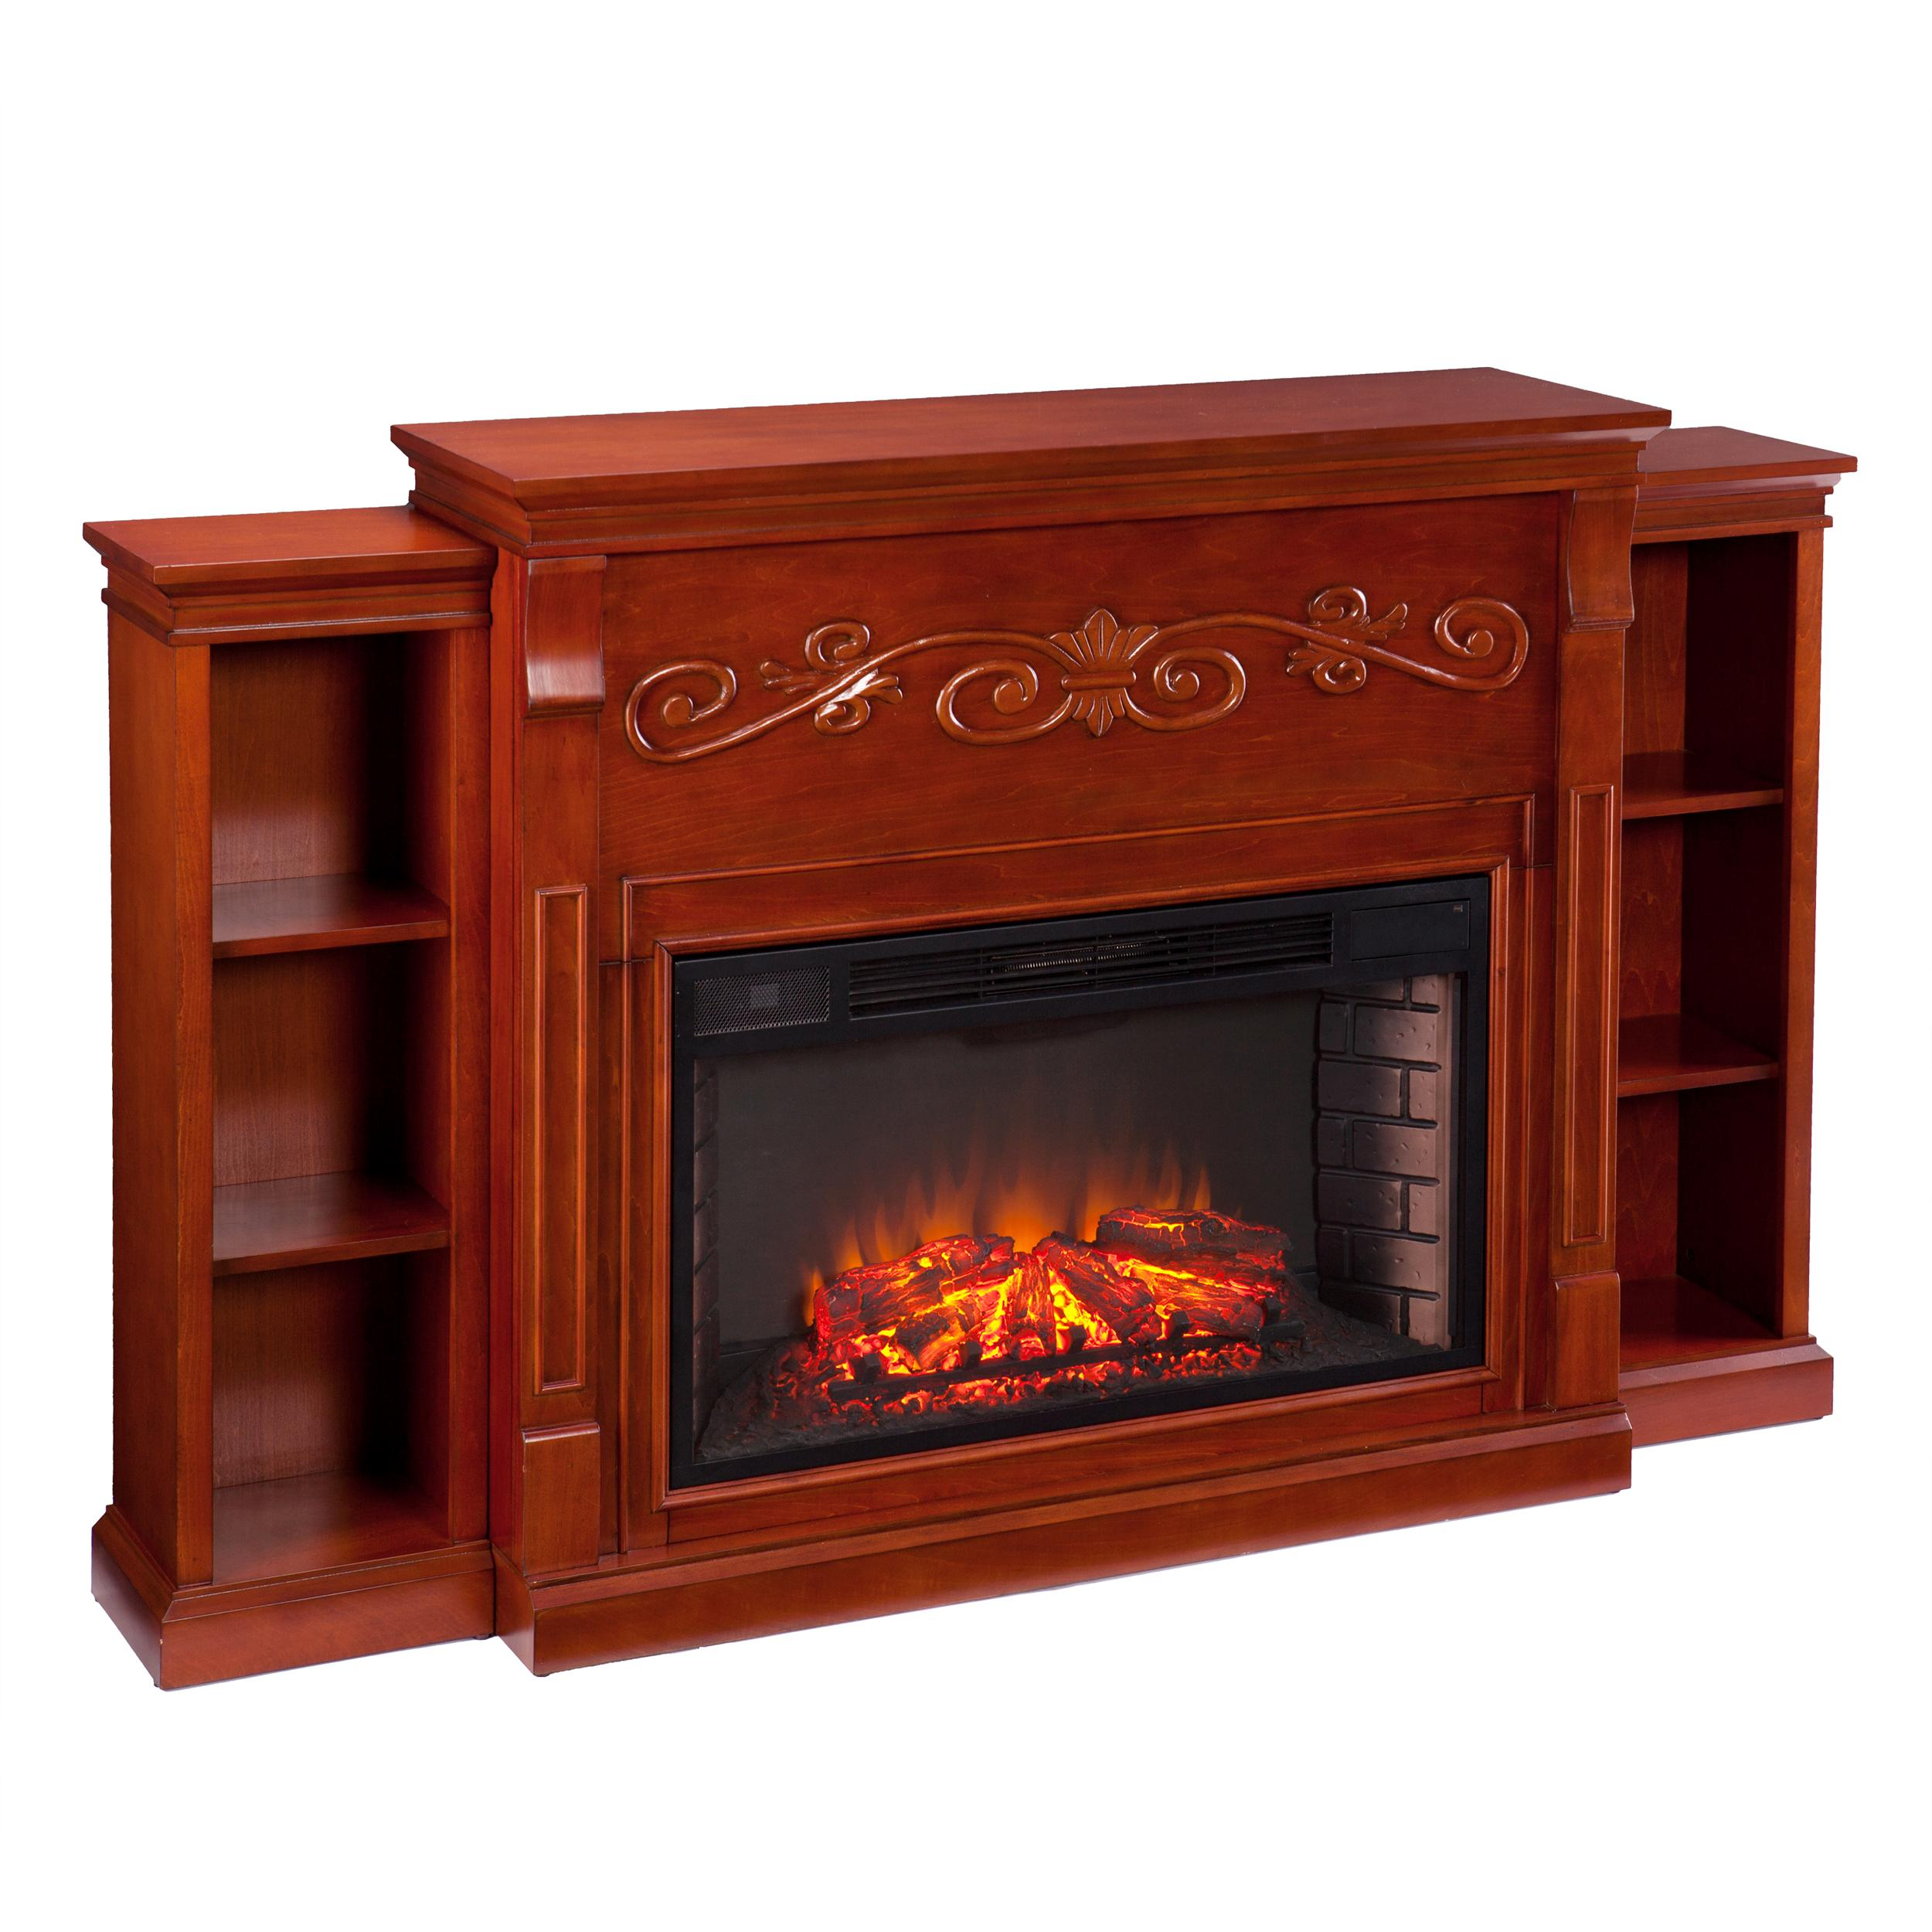 locksley bookcase electric fireplace classic mahogany kitchen dining. Black Bedroom Furniture Sets. Home Design Ideas